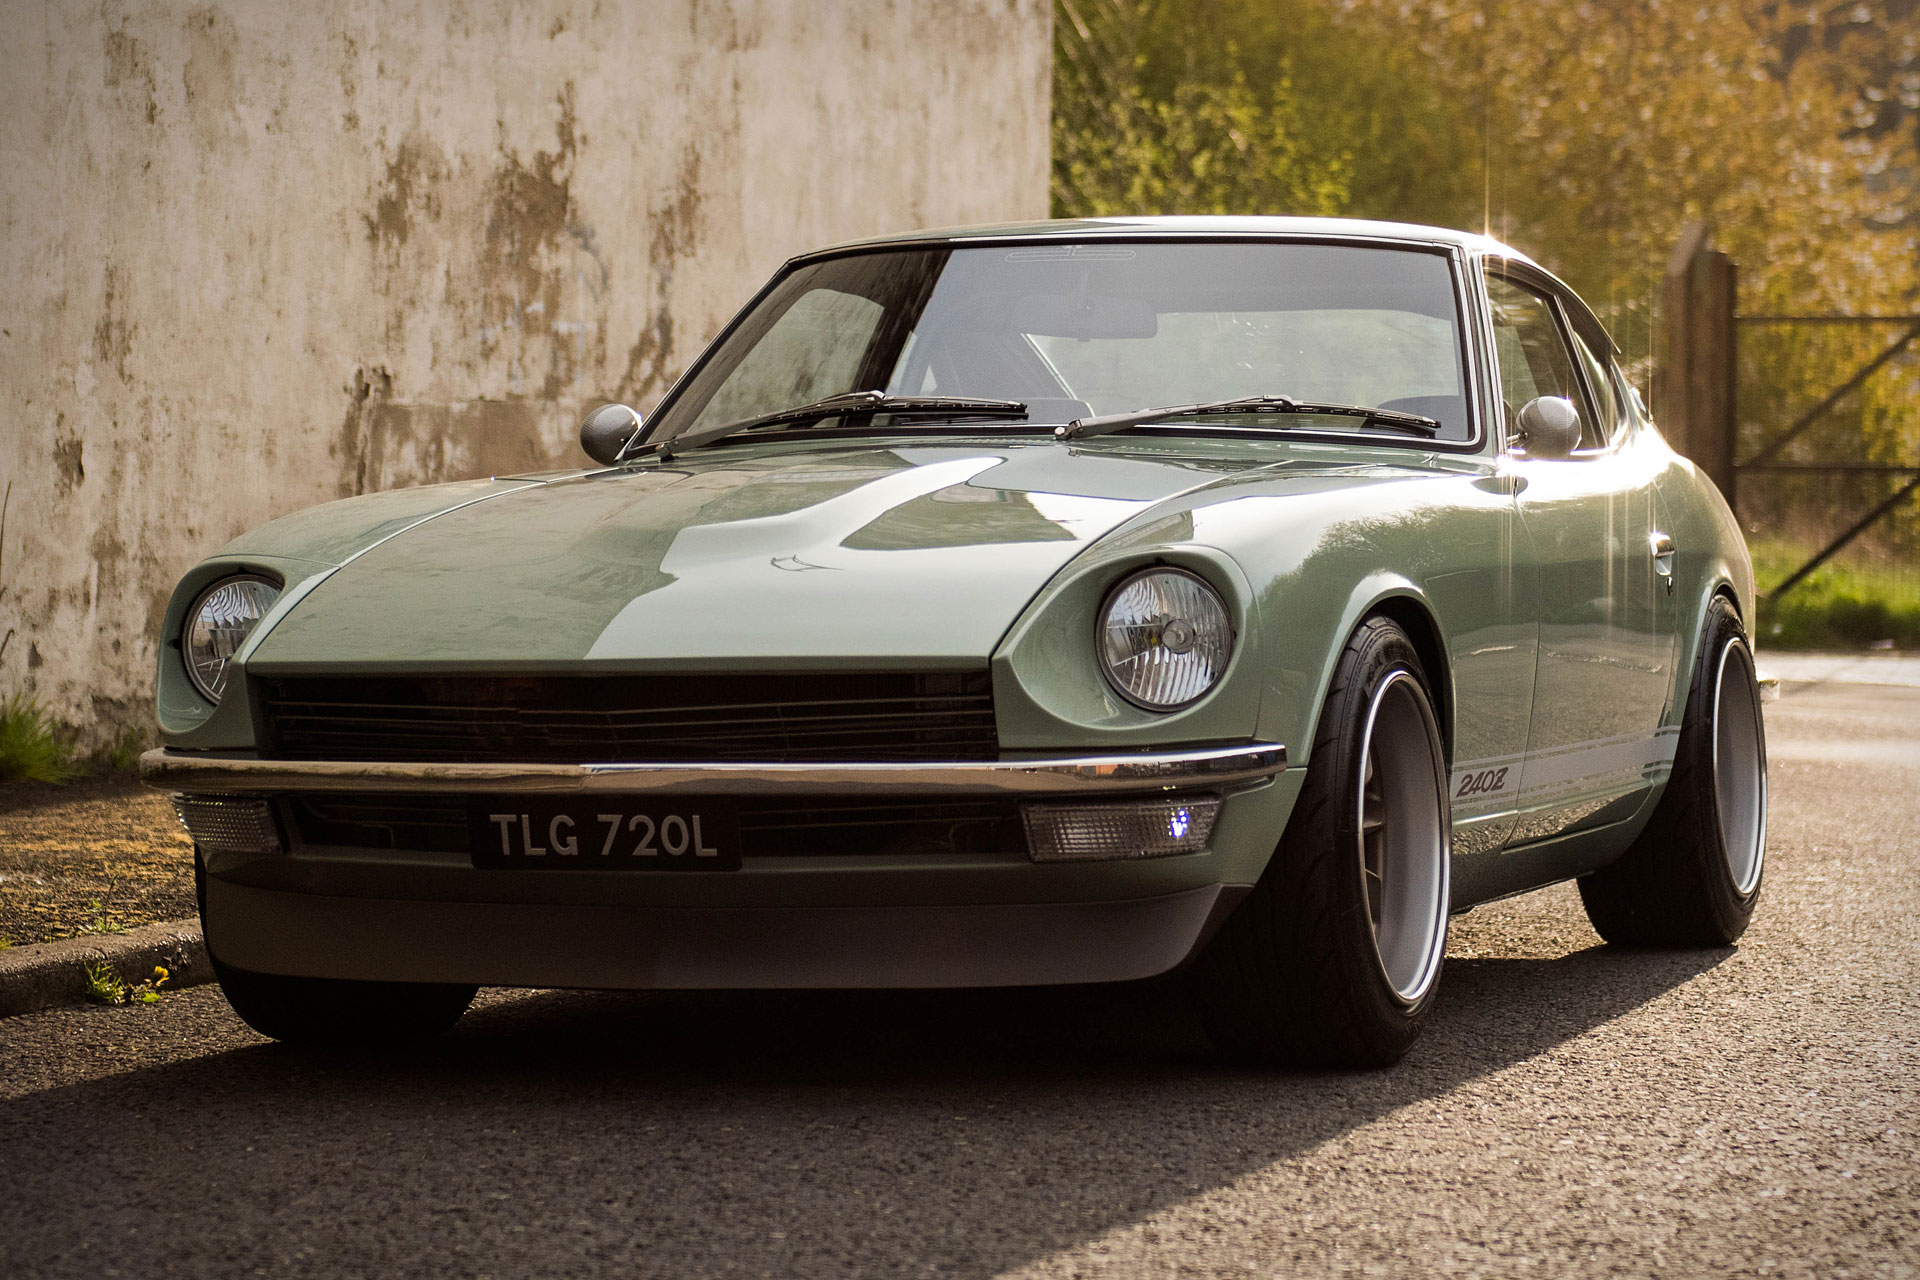 Car Wallpaper 240z Mzr Datsun 240z Coupes Uncrate